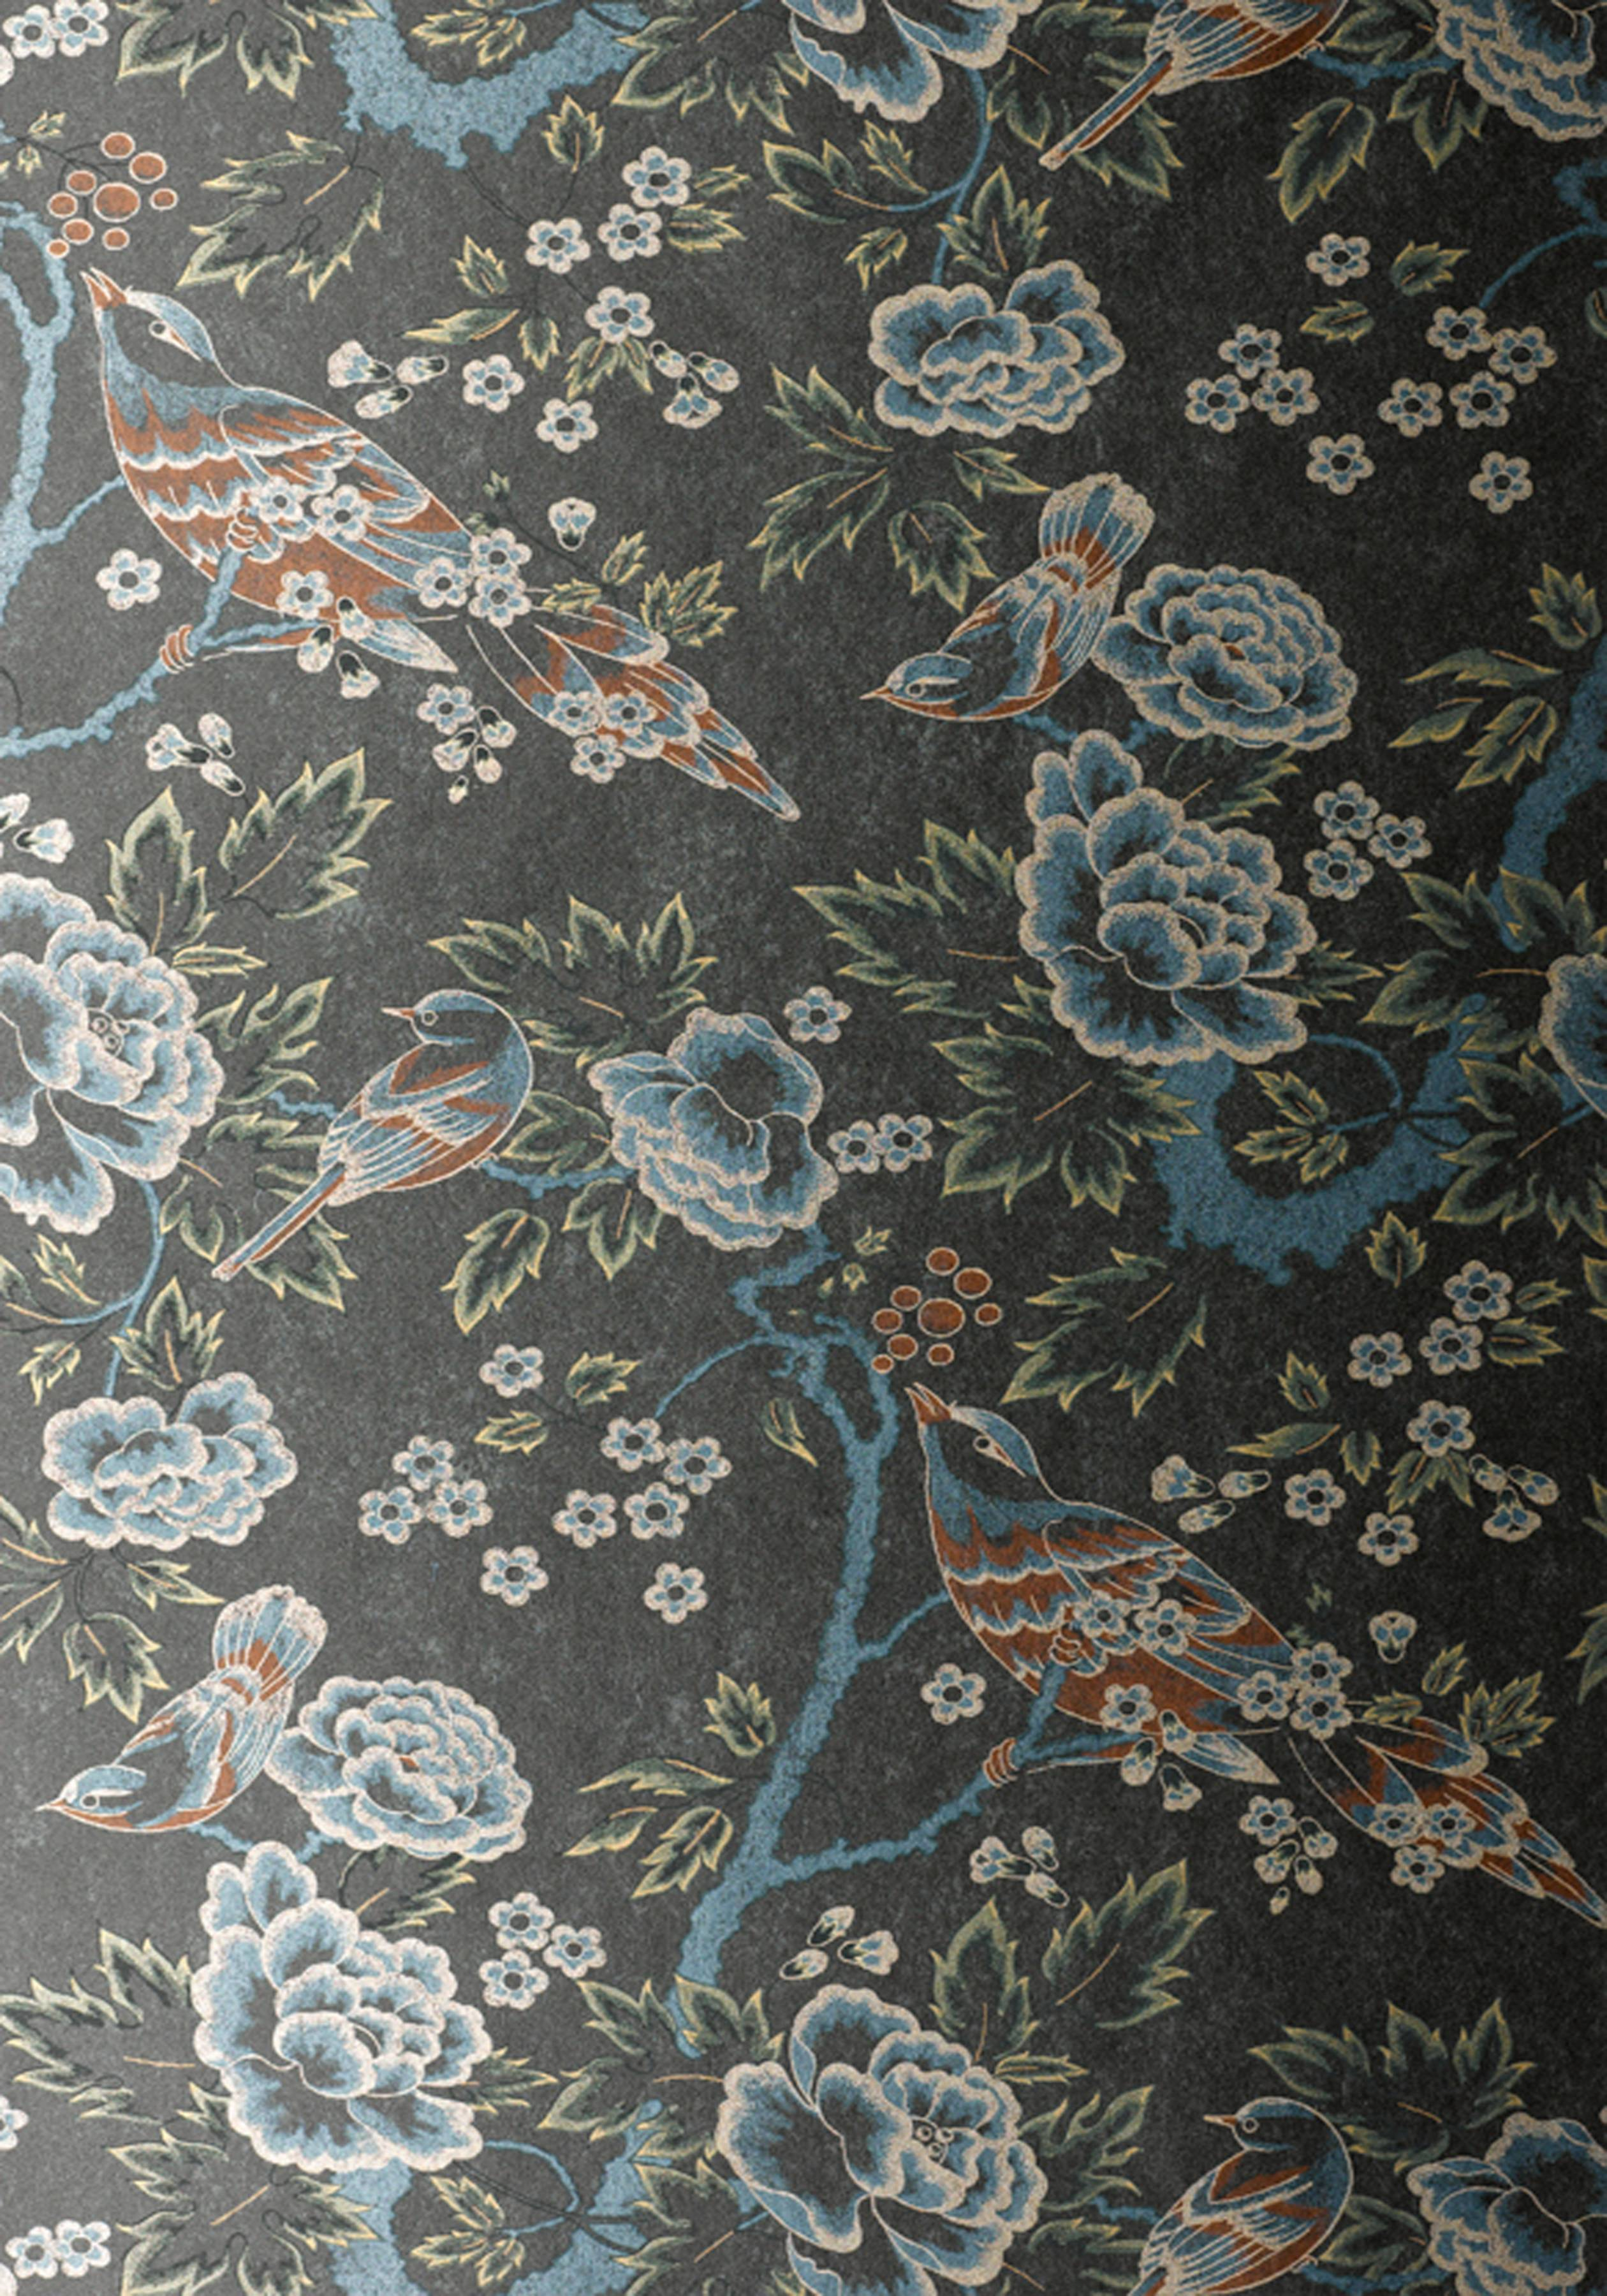 Anna-French-Wild-Flora-Songbirds-Silver-Black-shop-connection-com-wallpaper-wp4404500